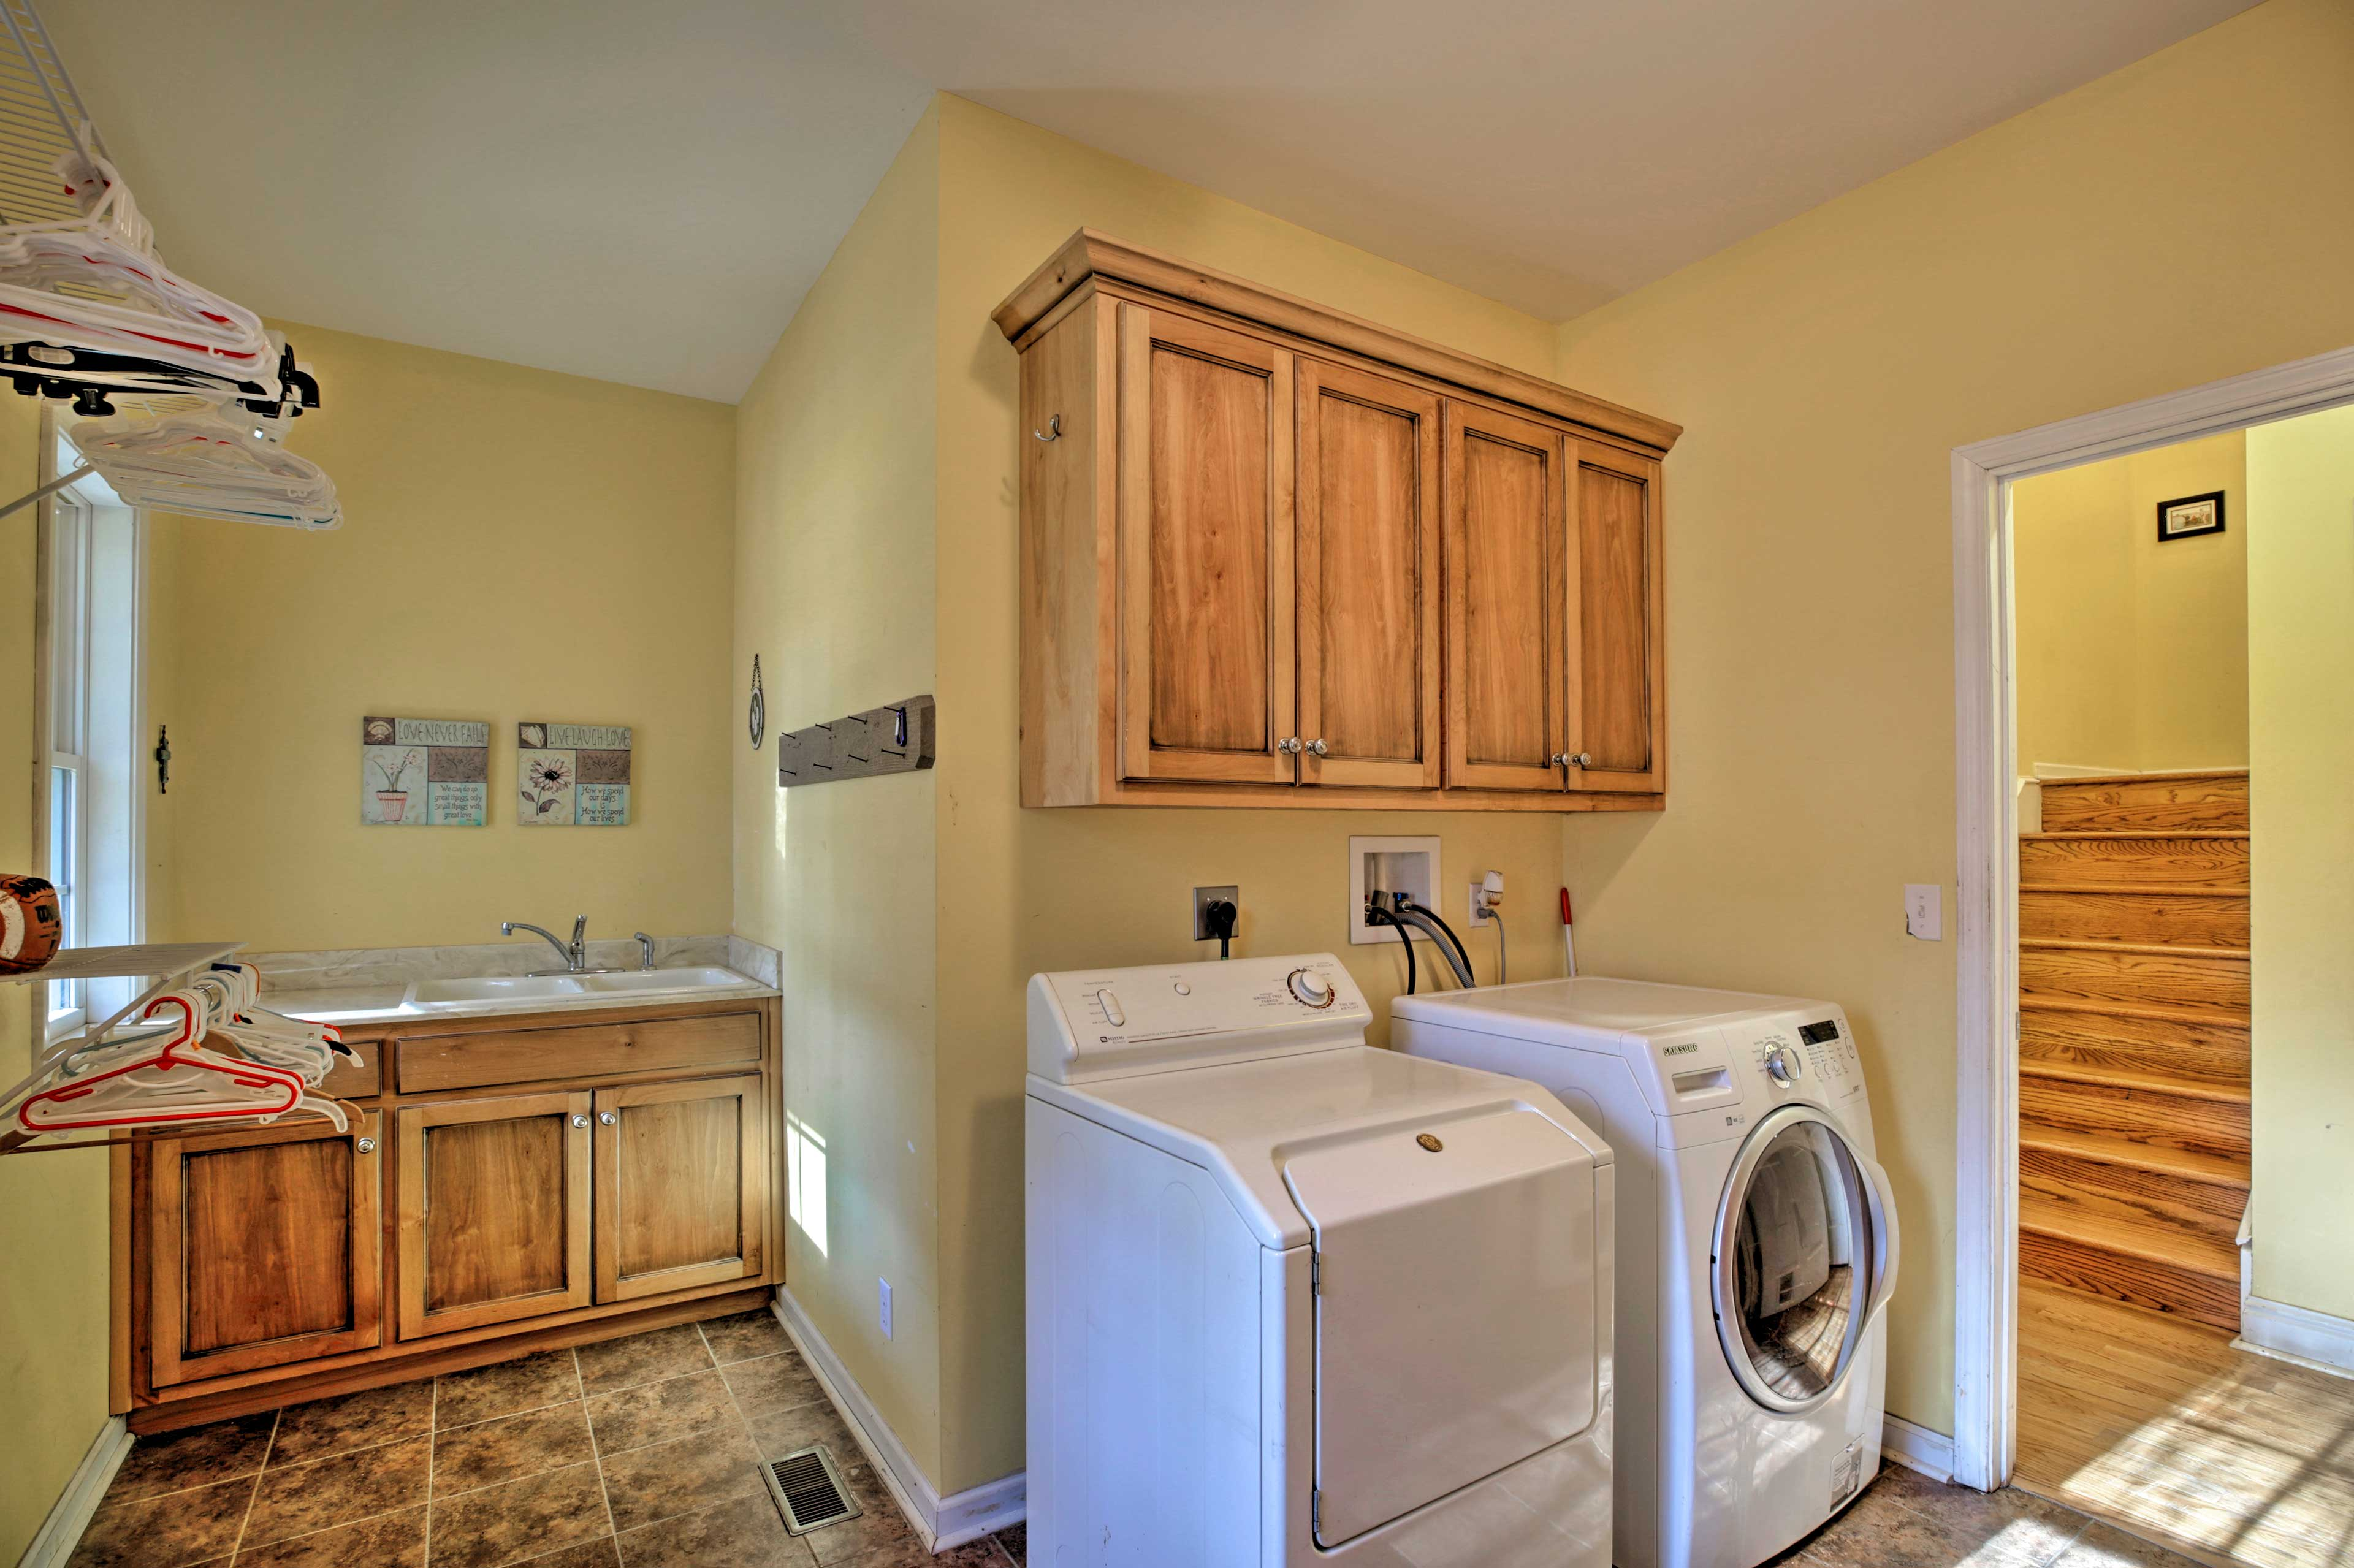 Pack light and utilize the washer and dryer.